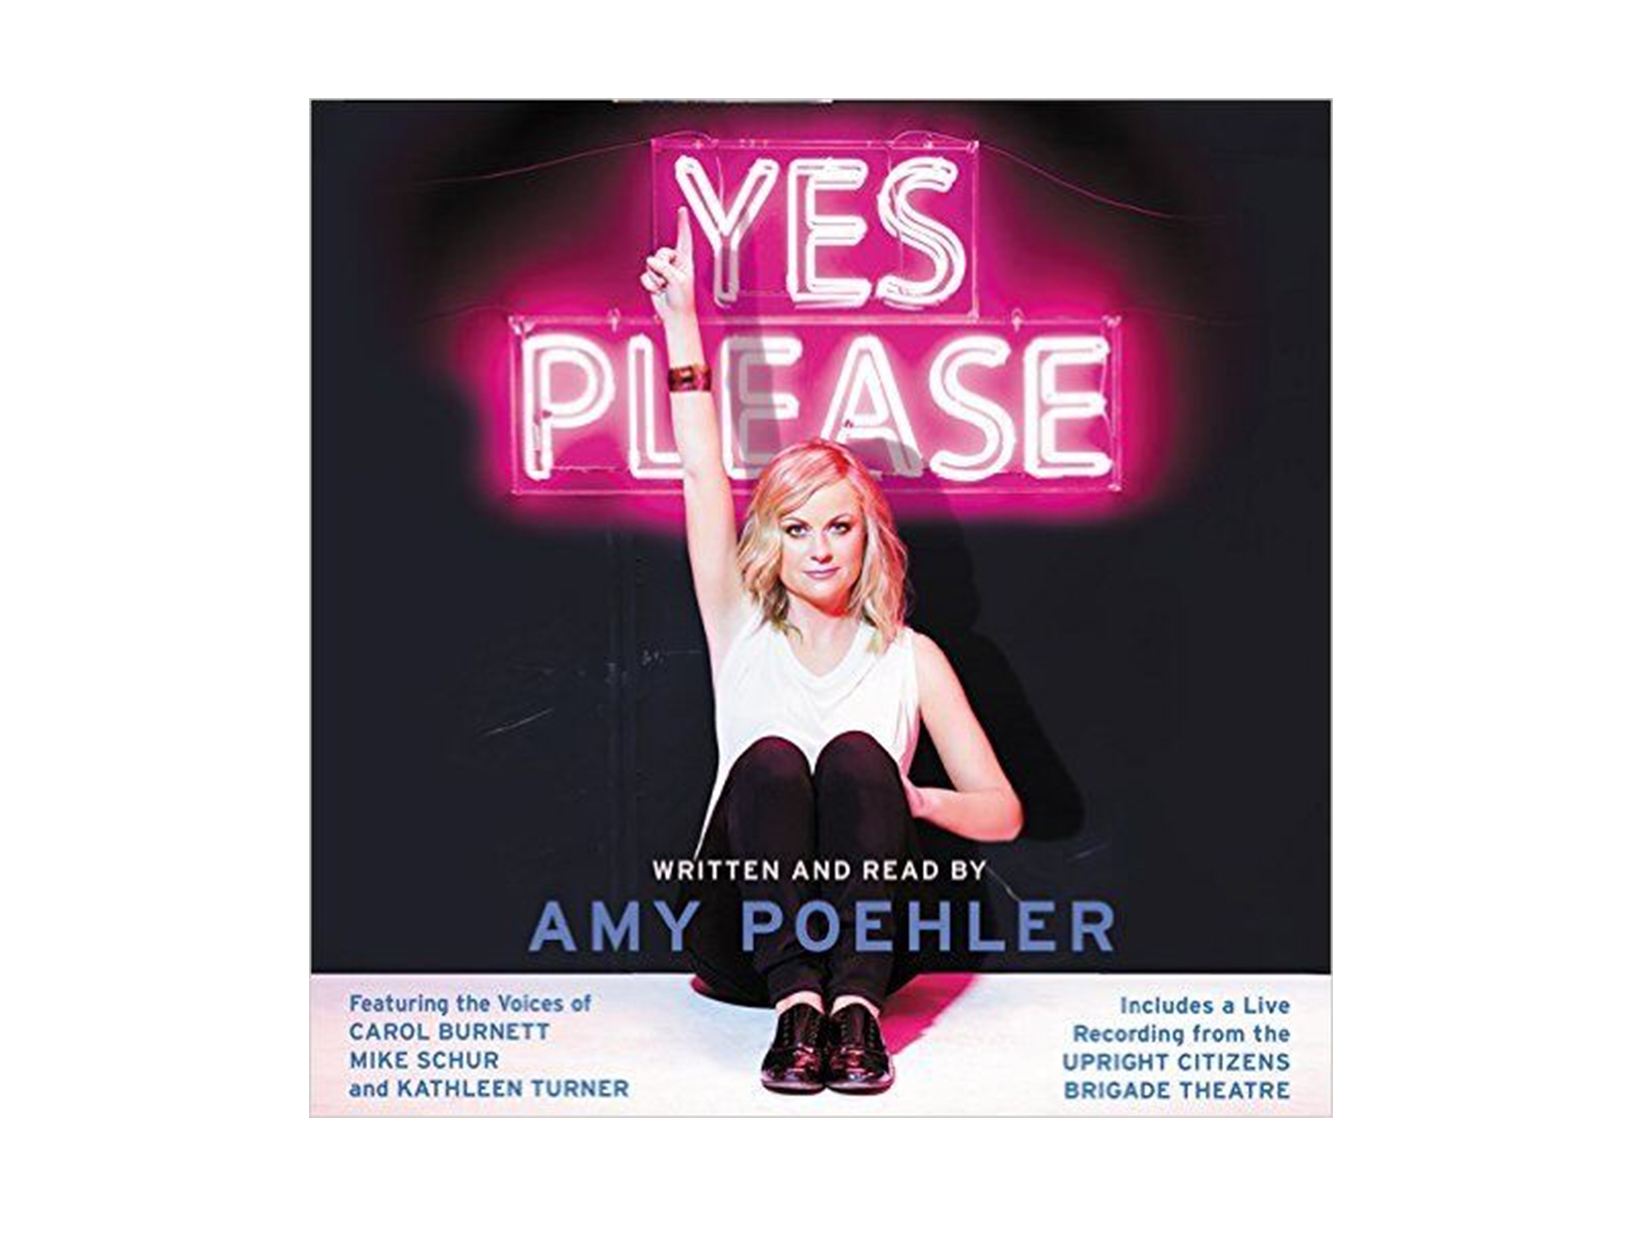 Yes Please, written and read by Amy Poehler